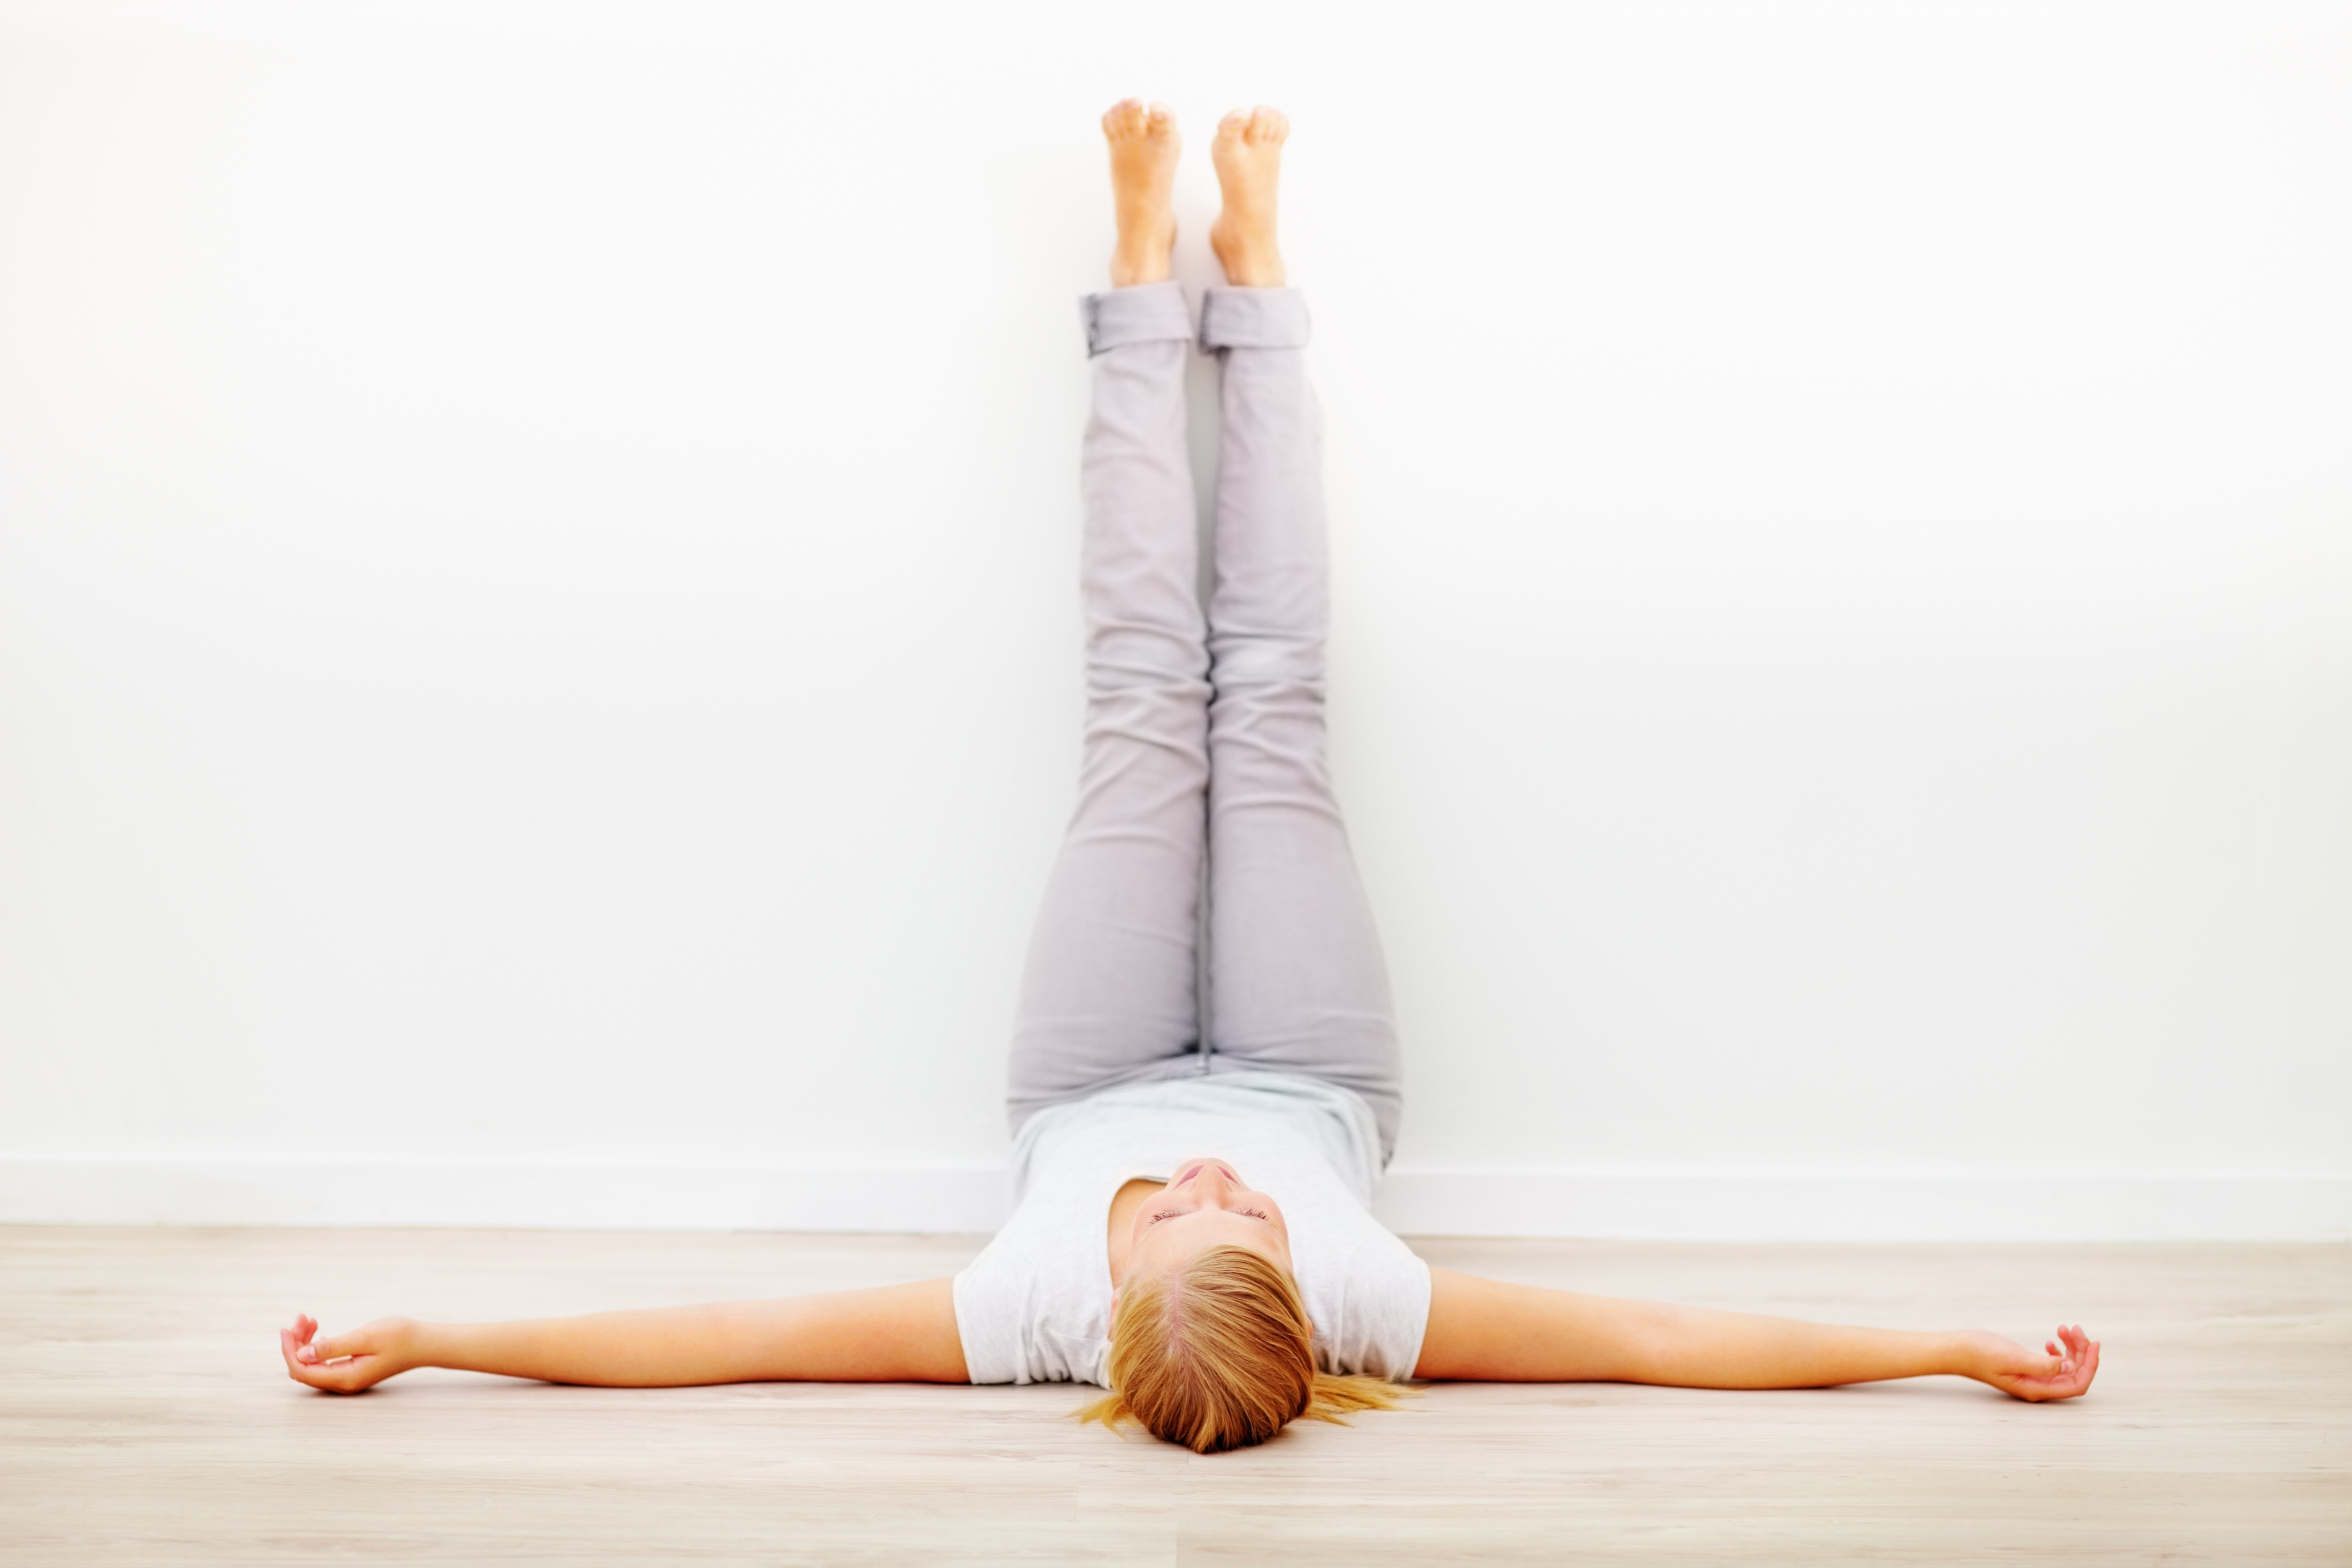 Learn How to do Legs Up the Wall Pose with Meddy Teddy and Yoga Outlet